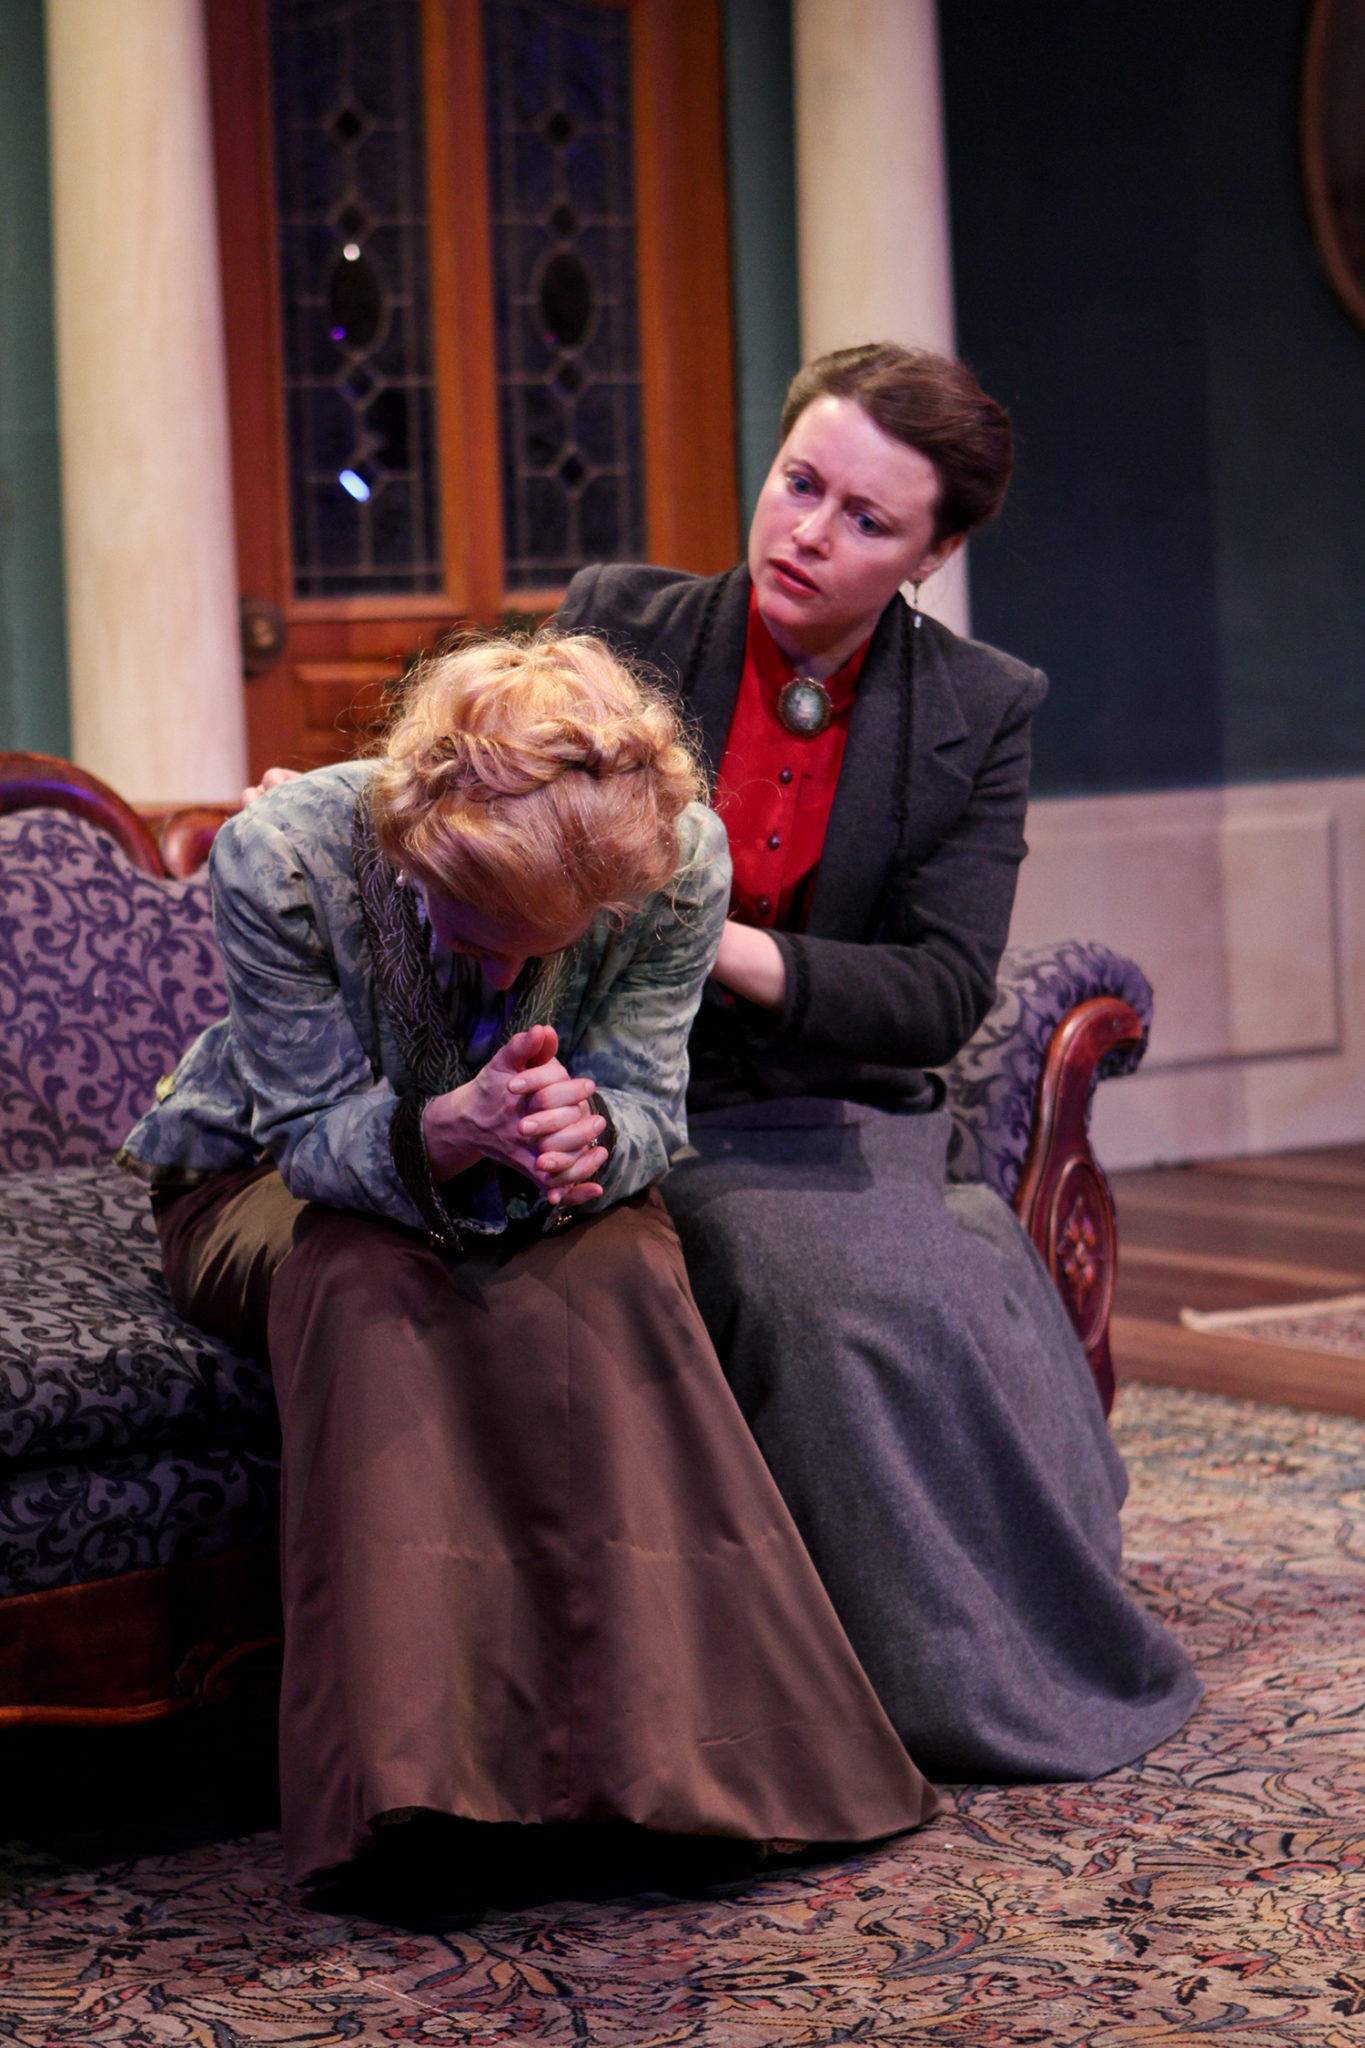 an evaluation of the personality of protagonist nora helmer in ibsens a dolls house The power of ibsen's women in a doll's house and so says nora helmer in a doll's house  she told me to enjoy all the different facets of nora's personality.